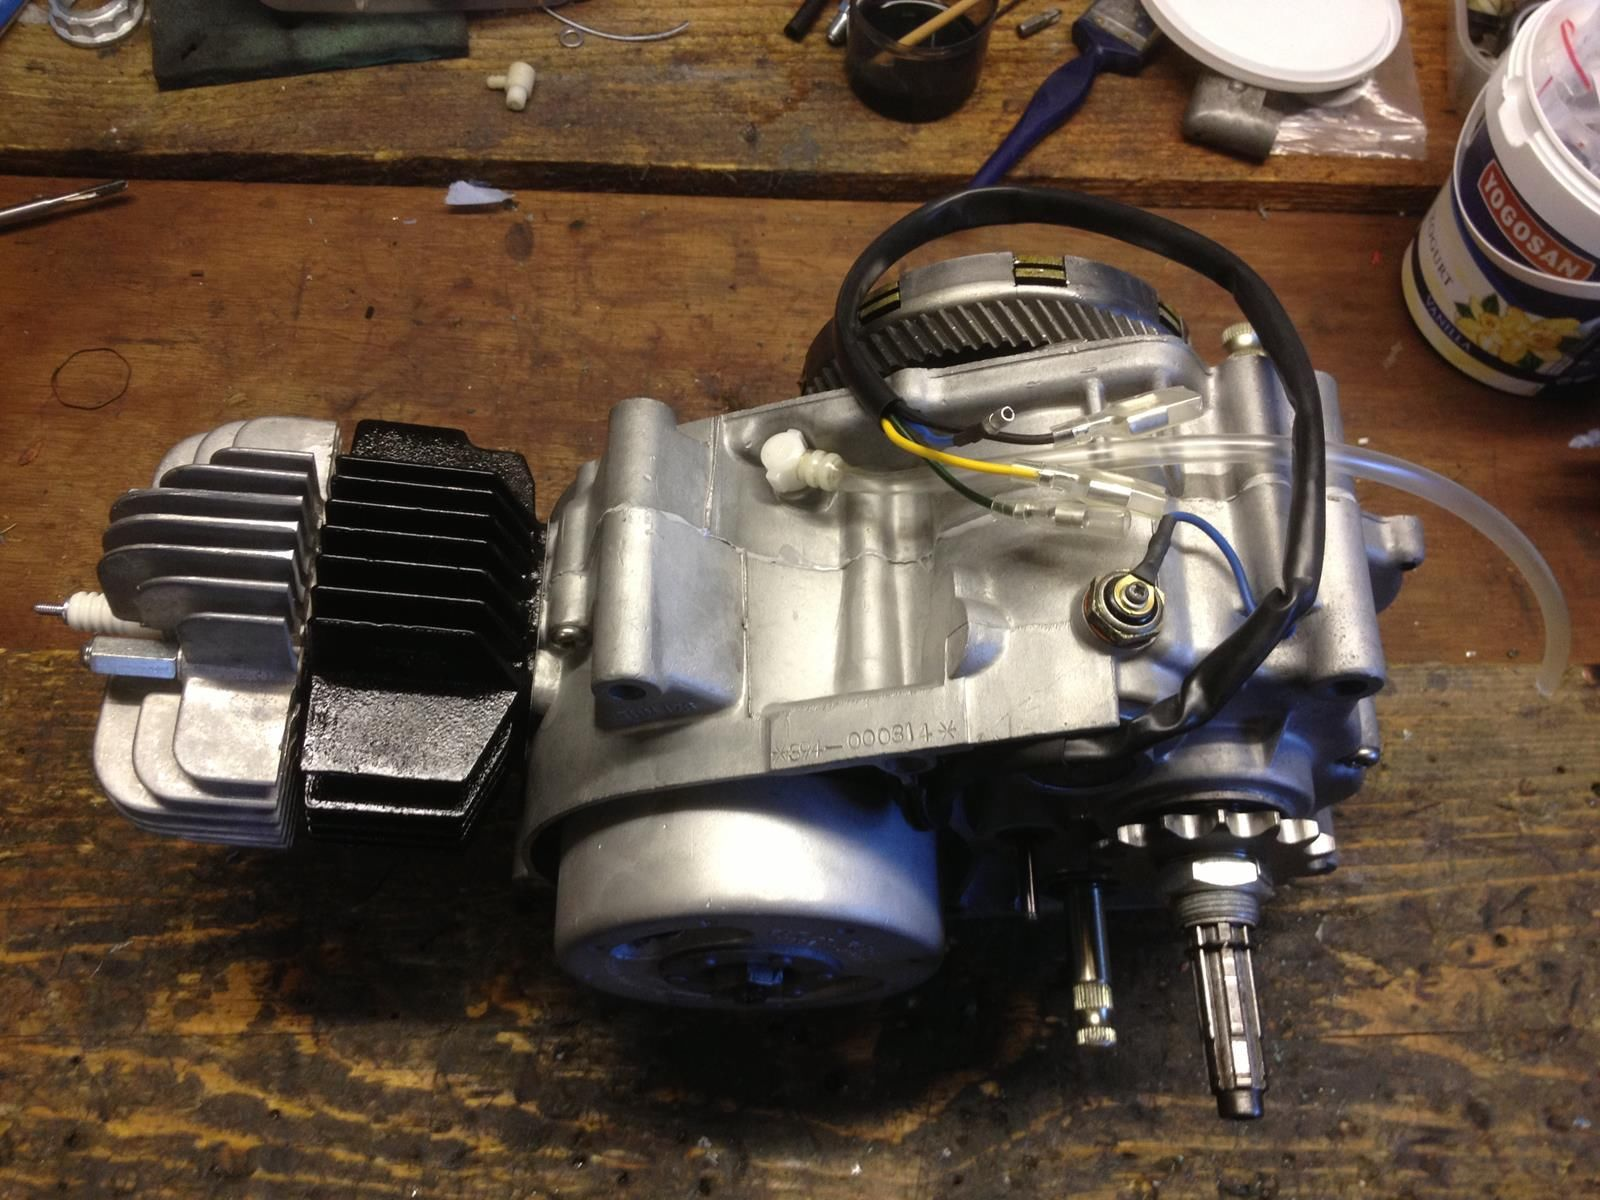 Yamaha SS50 - 1973 - Restored Engine, New Seals, Vapour Blasted Cases, Flywheel and Sprocket.